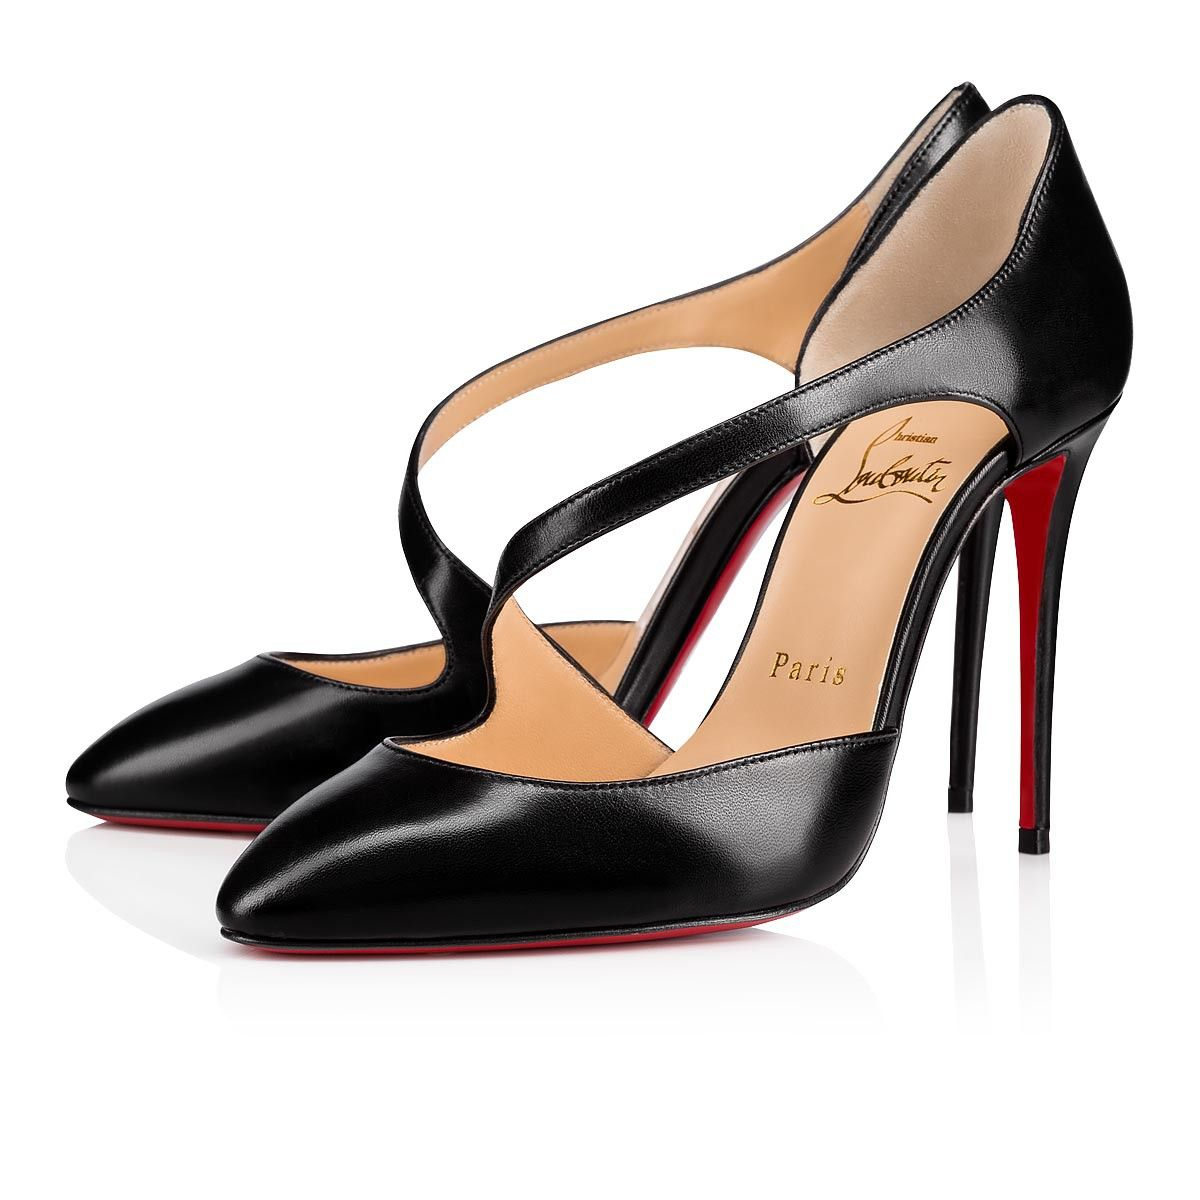 a58dadc3cfc Catchy One 100 Black Leather - Women Shoes - Christian Louboutin in ...